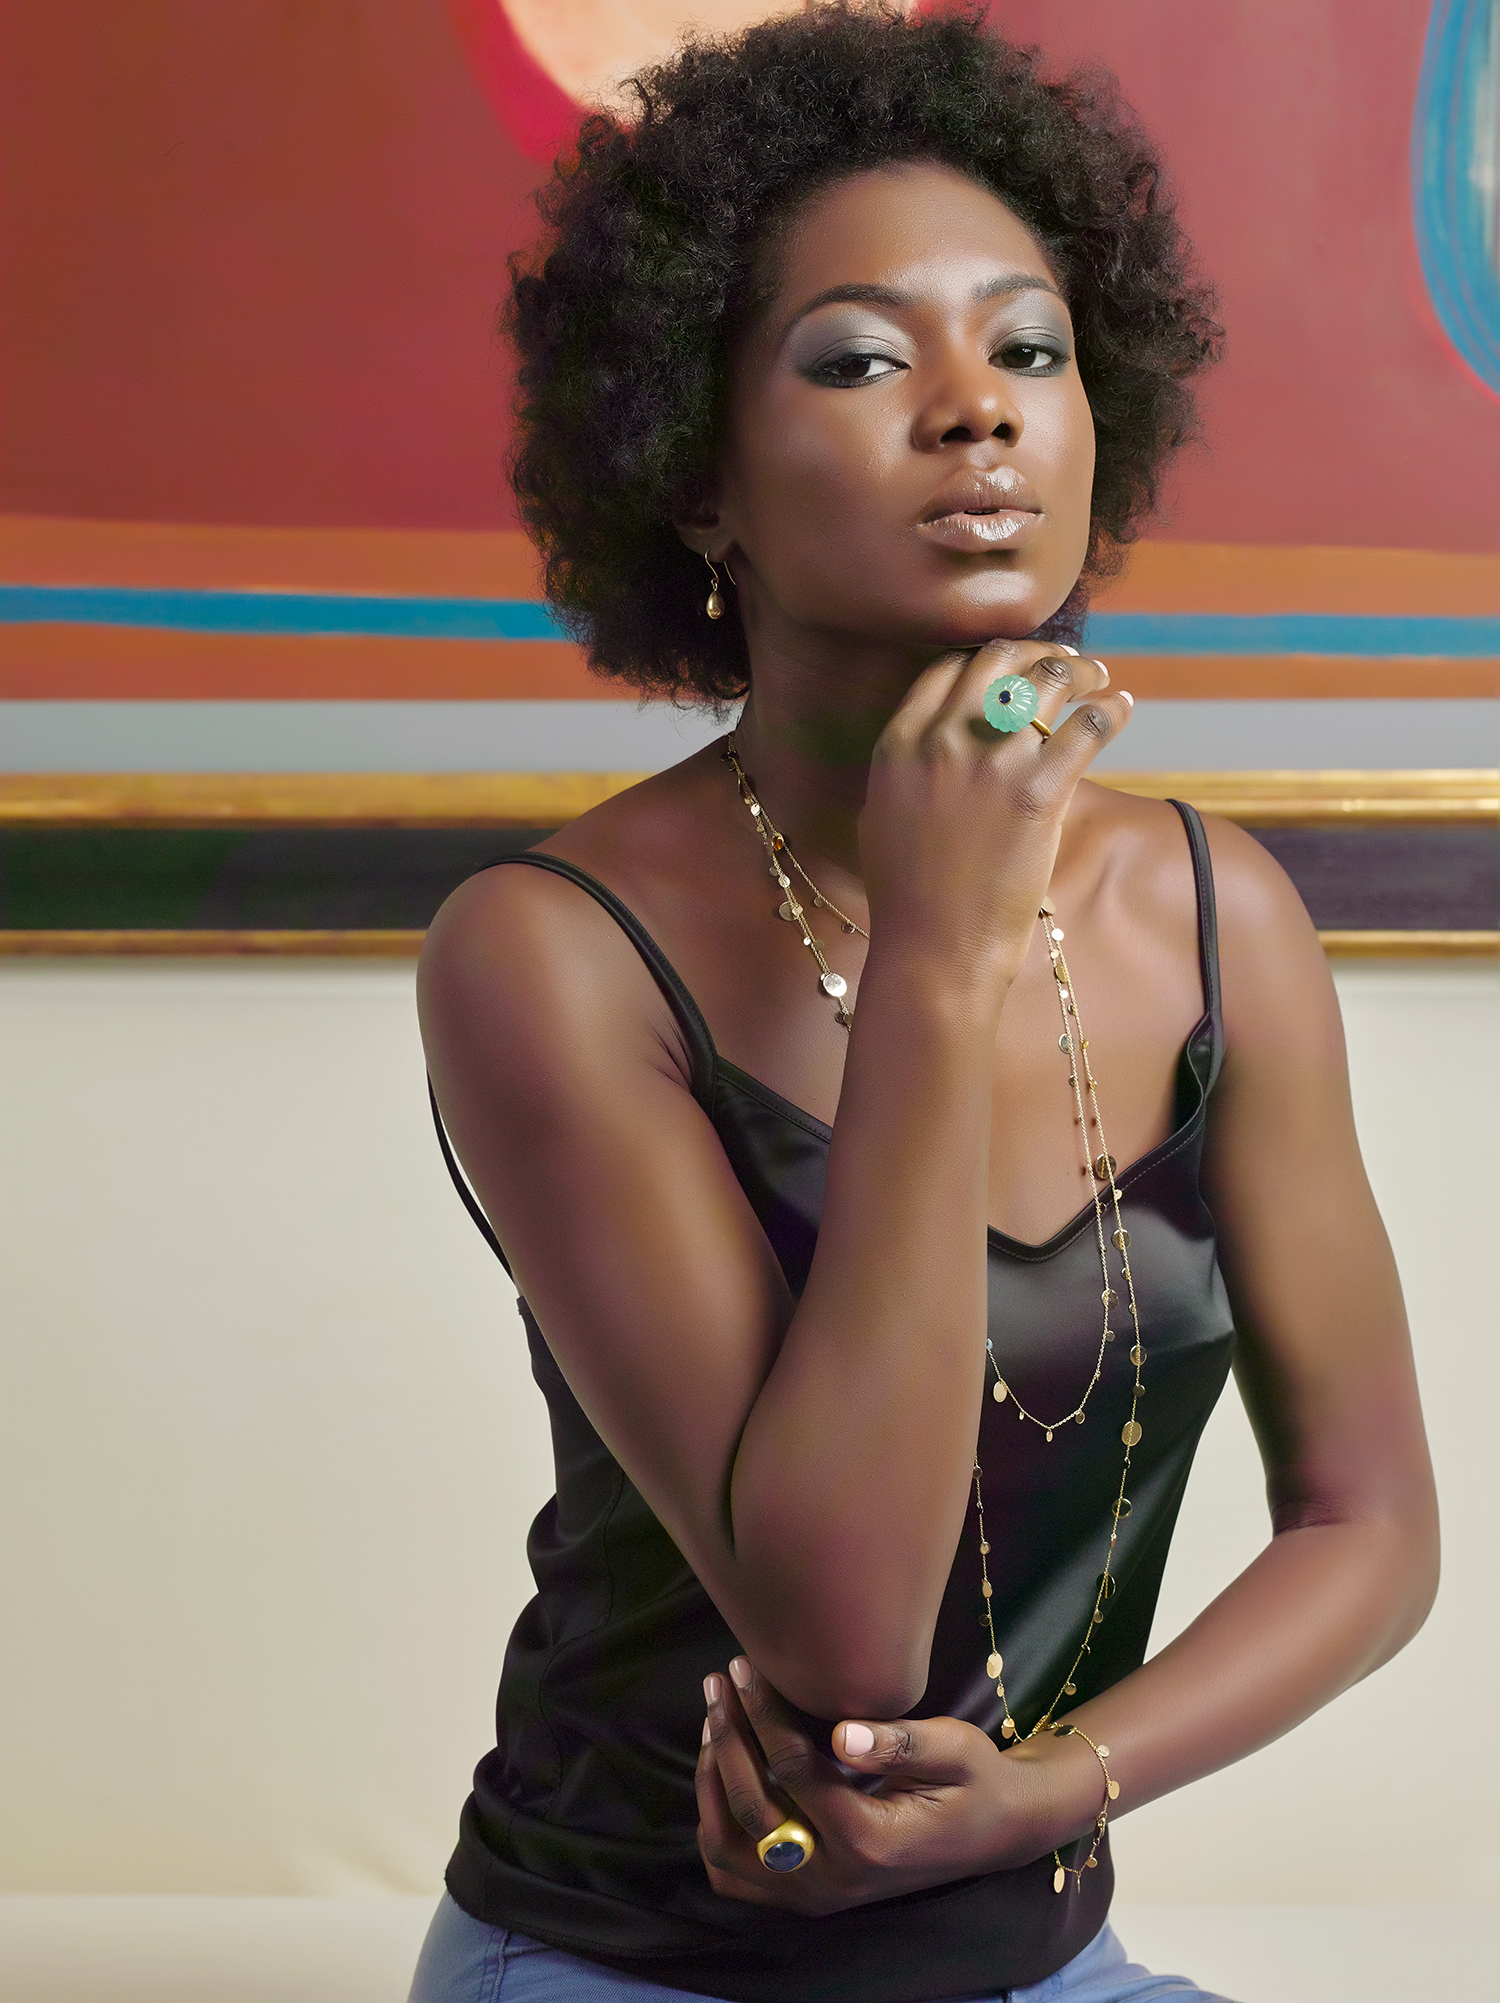 Sixties look to this jewellery on model shot. Black model wearing long gold chain and large ring, looking straight at the photographer